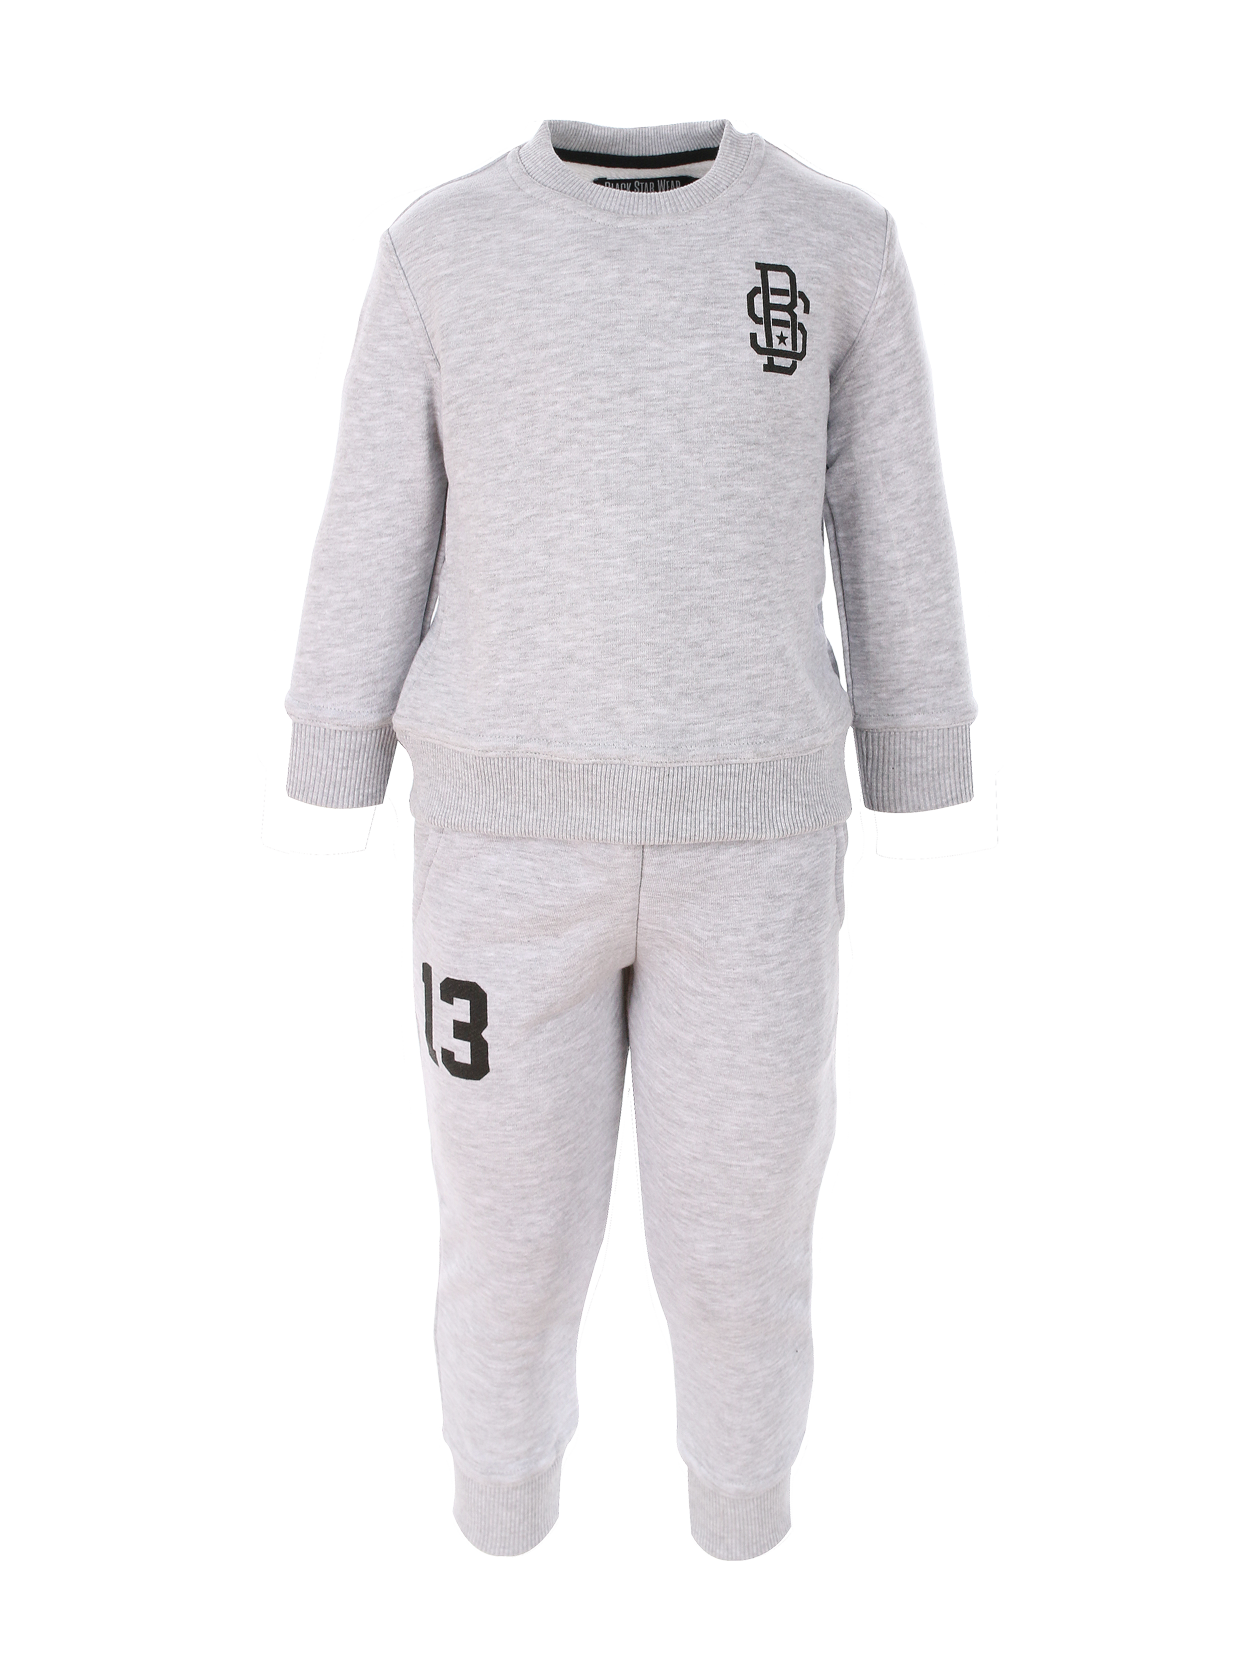 Kids sport suit BS13Kids sweatpants and sweatshirt set by Black Star Wear. Straight fit, natural cotton. Sweatshirt with Black Star monogram on the chest and 13 print on the back. Joggers with side pockets and 13 print on the right side.<br><br>size: 9-10 years<br>color: Grey<br>gender: unisex